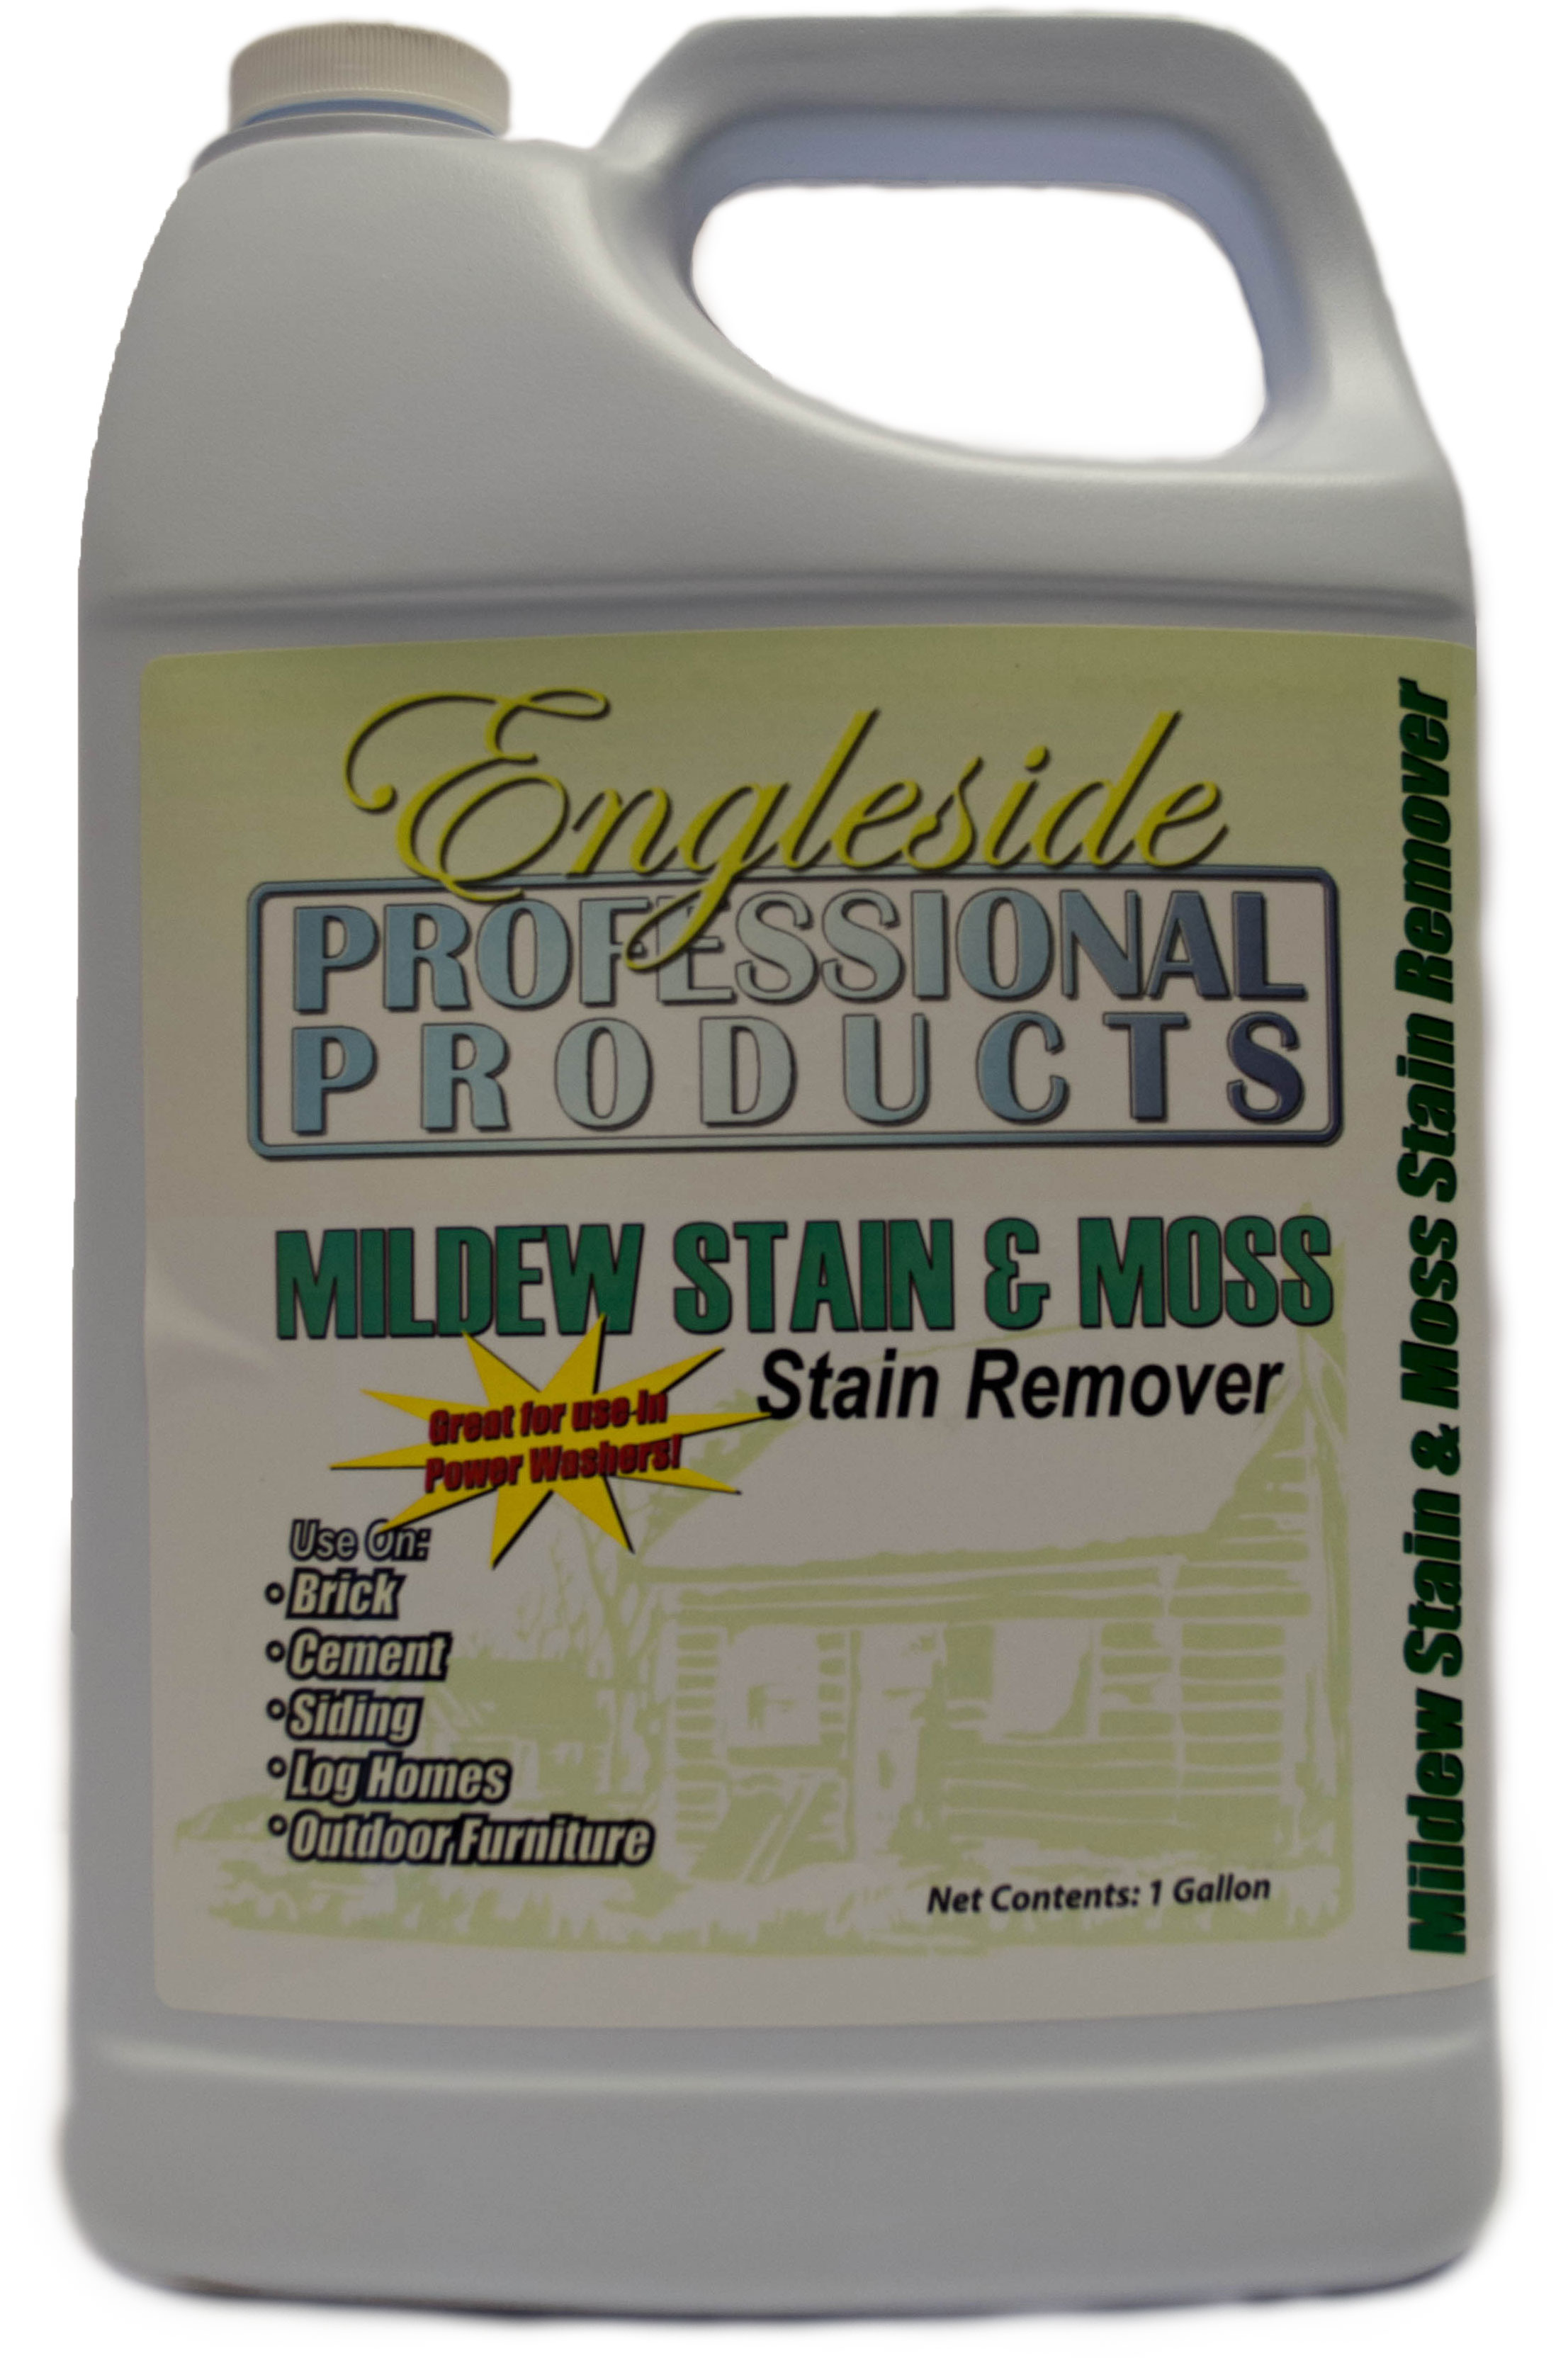 Professional Mildew Stain And Moss Stain Remover